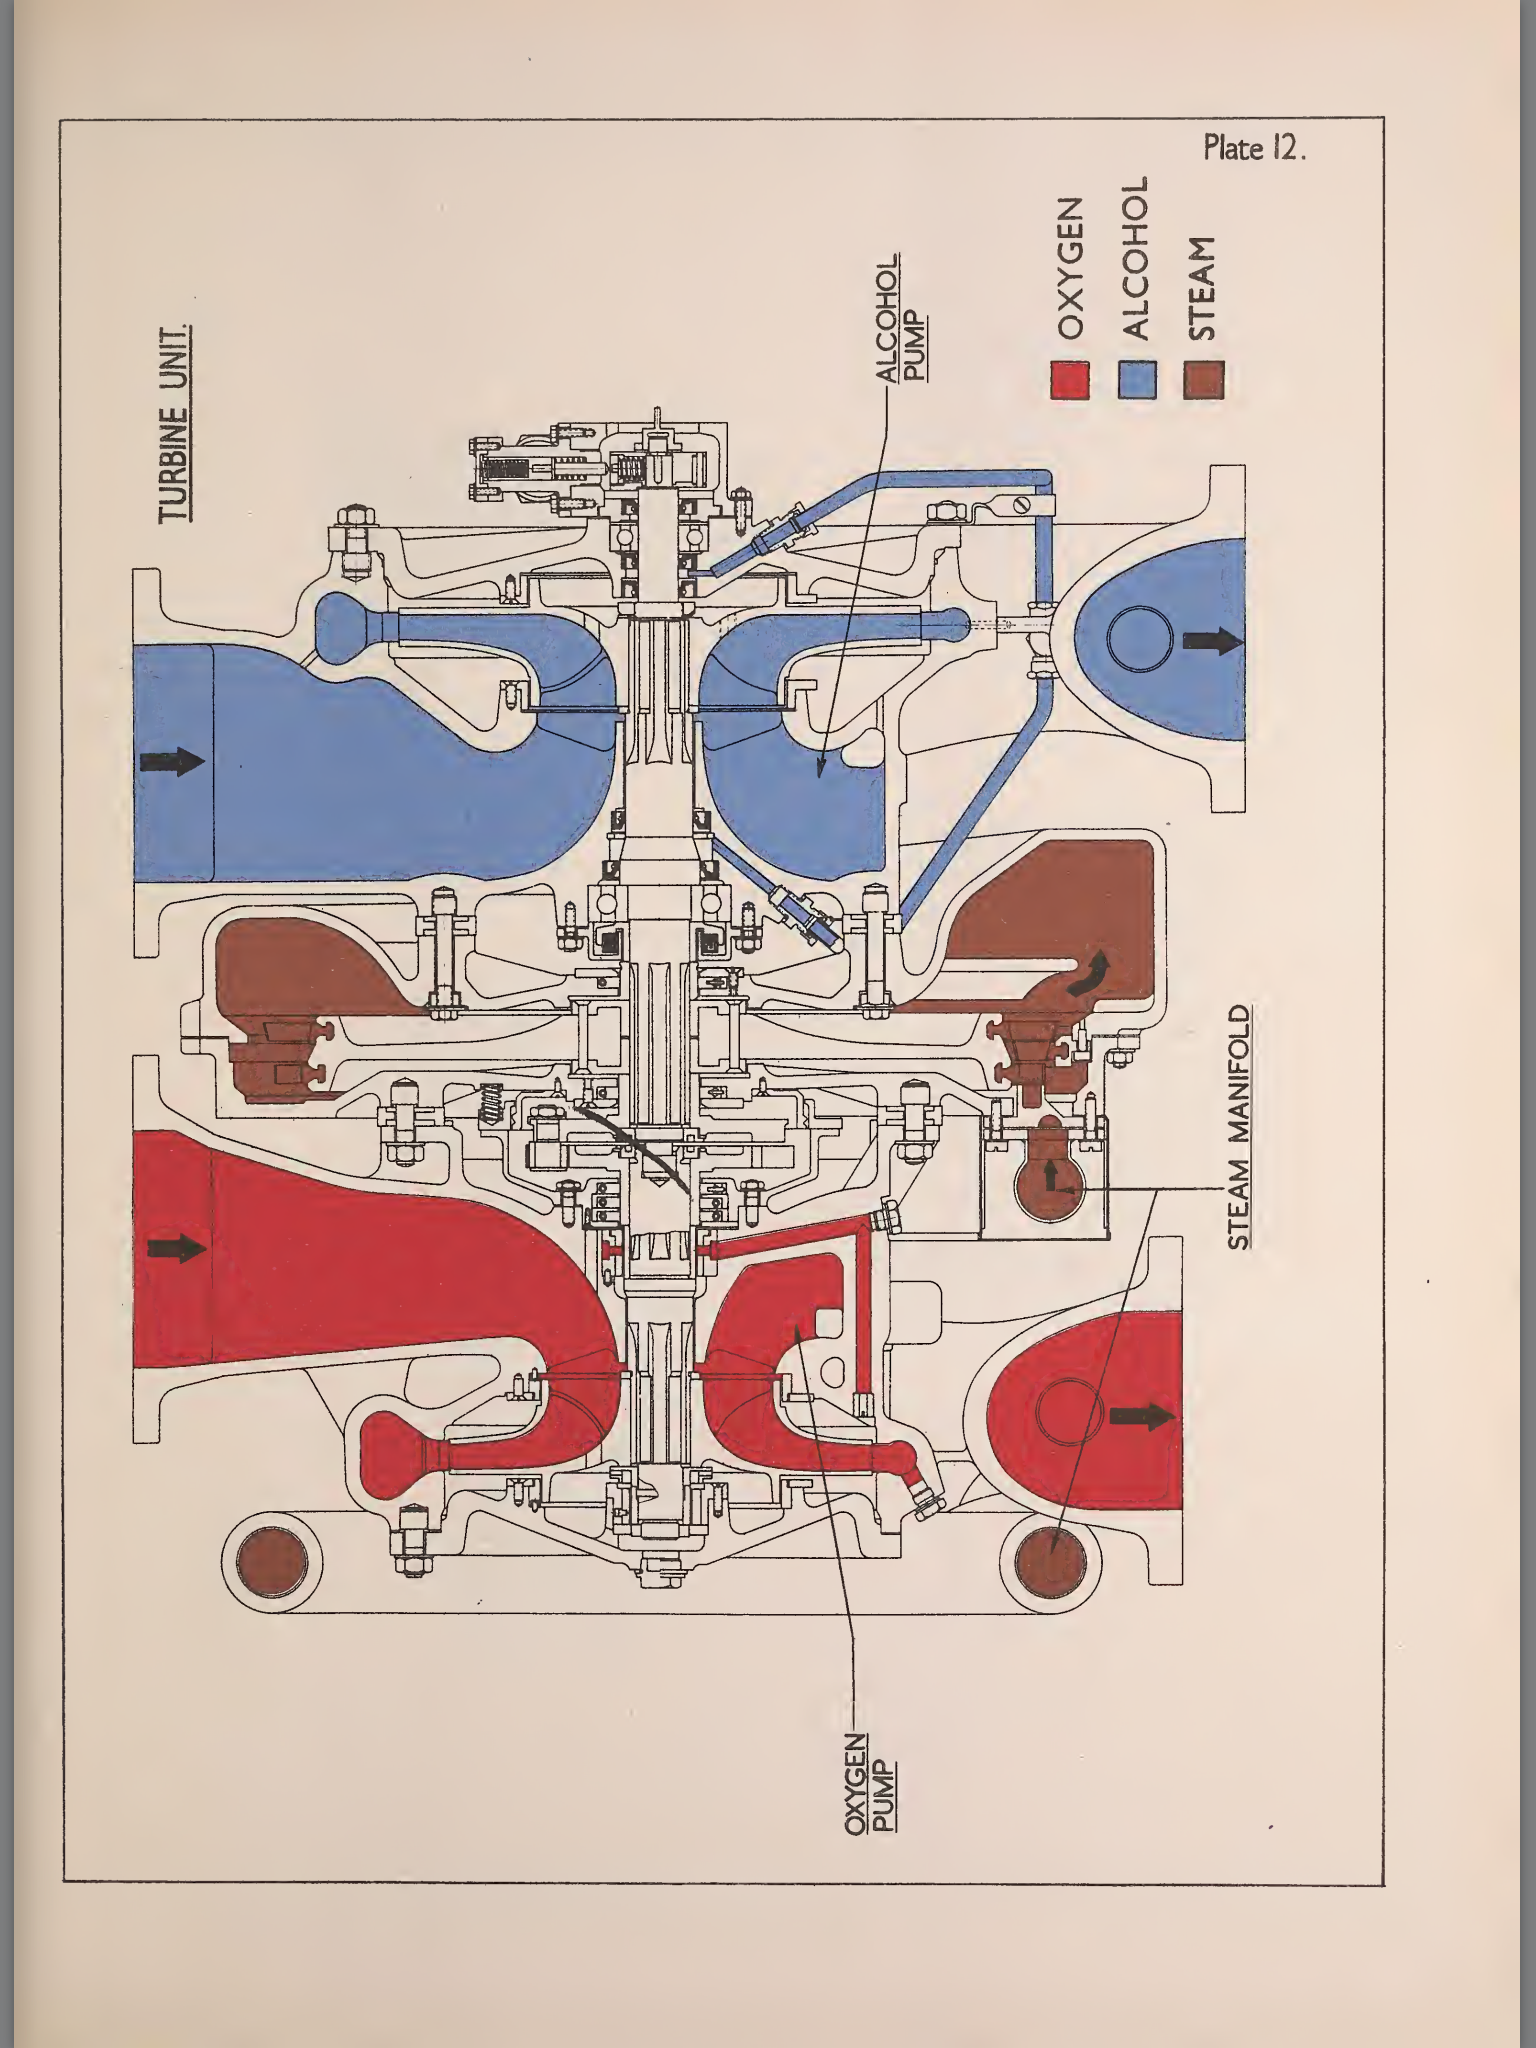 small resolution of v 2 rocket turbopump diagram rocket engine jet engine gas turbine aerospace